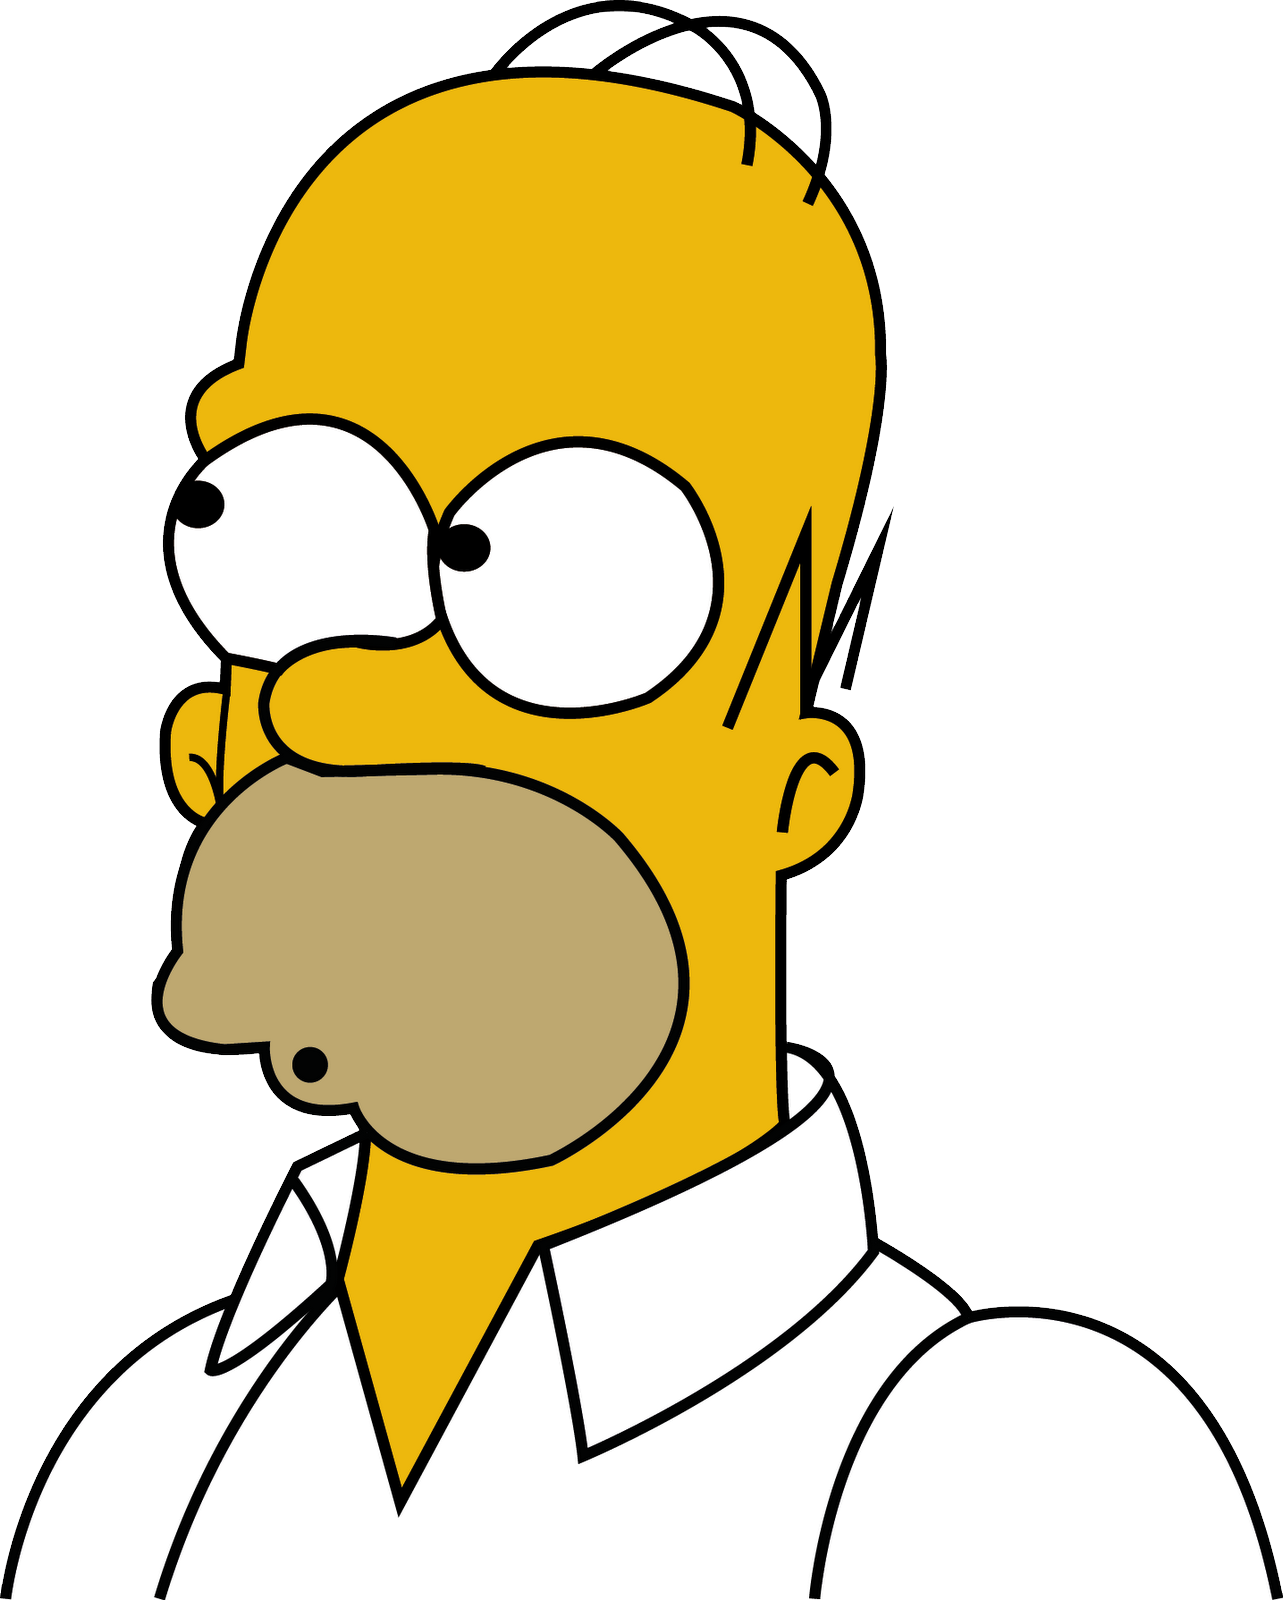 simpsons_PNG6.png